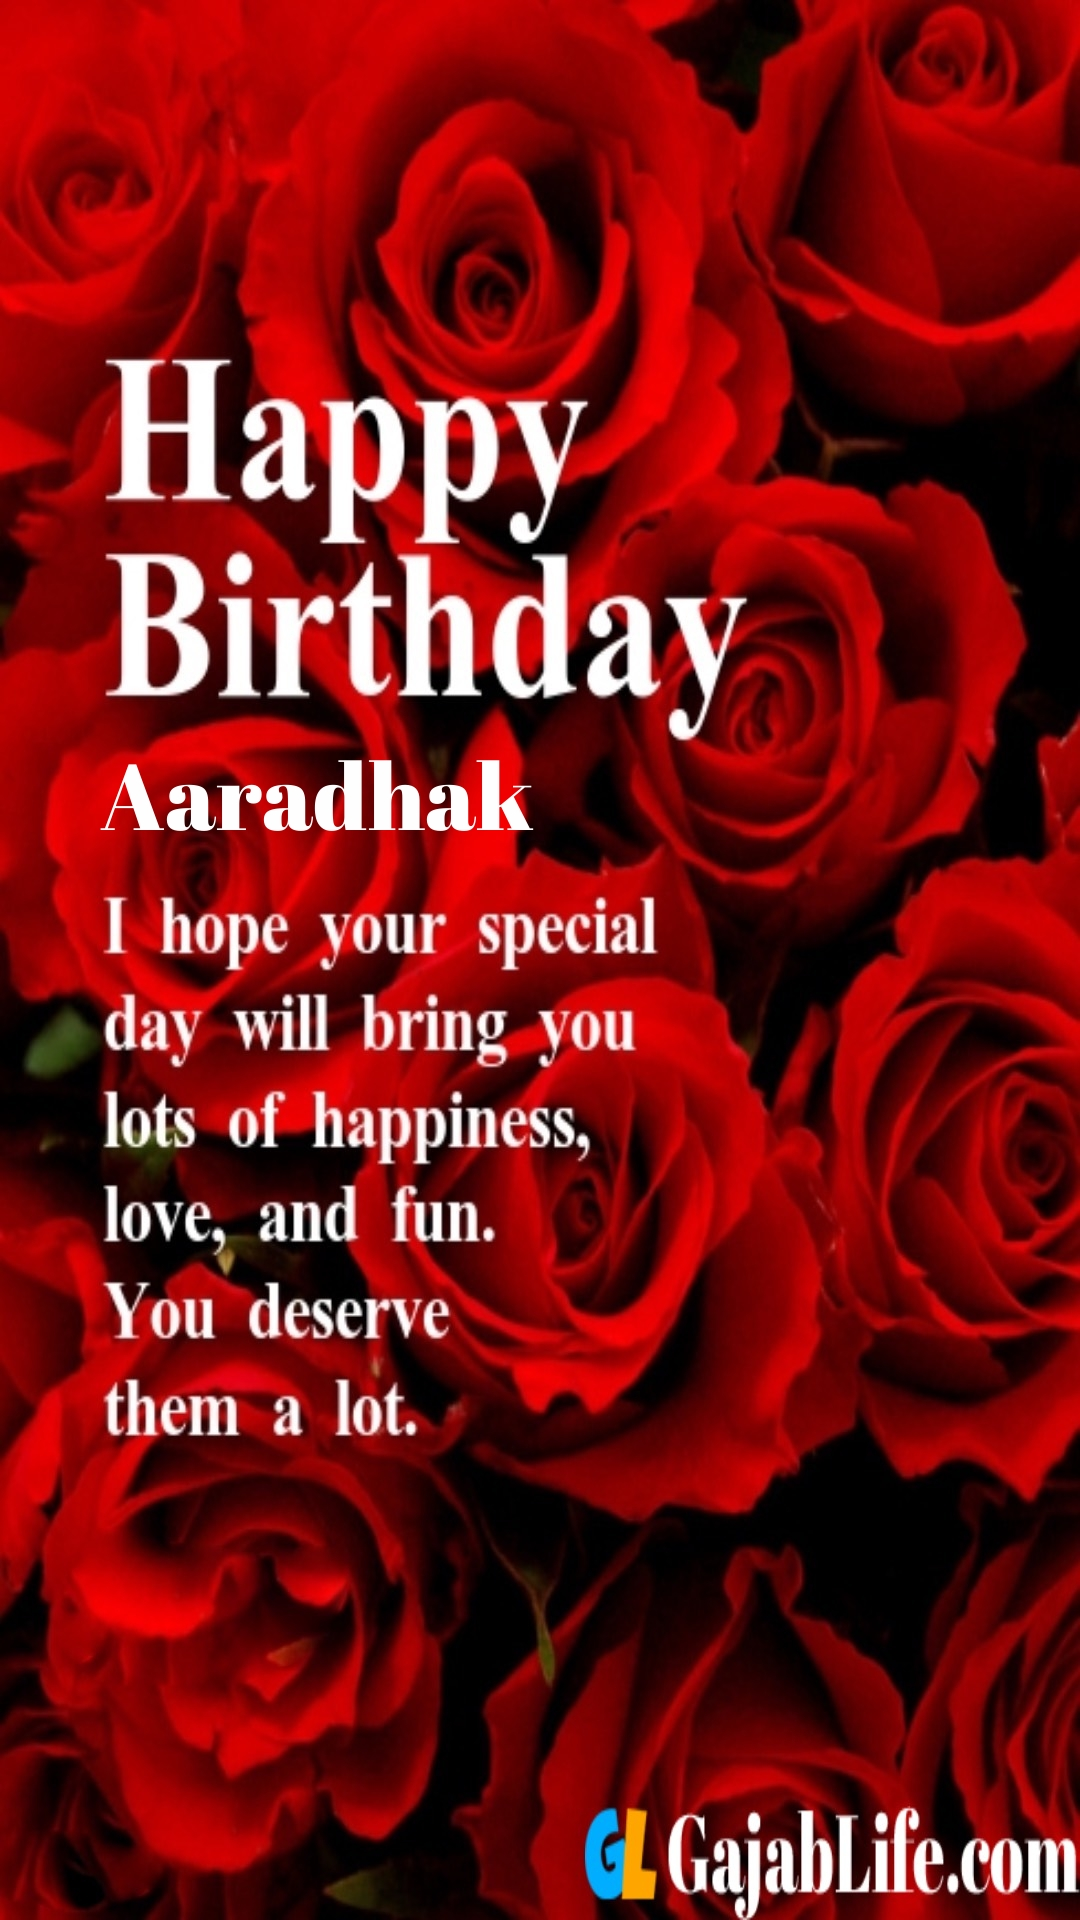 Aaradhak birthday greeting card with rose & love